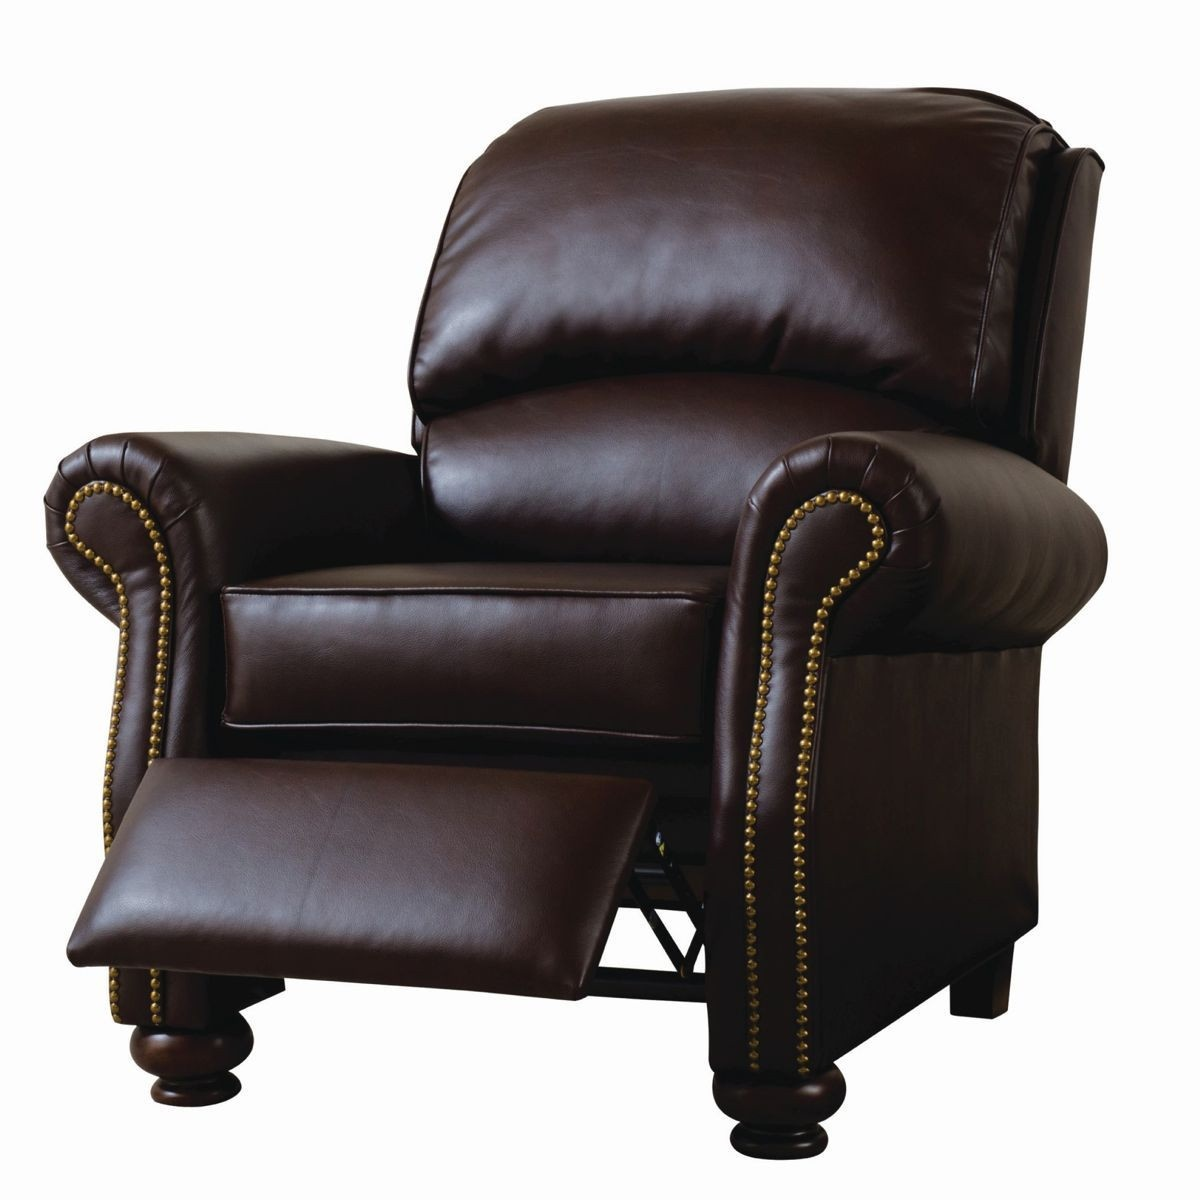 Furniture Clearance Center | Recliners